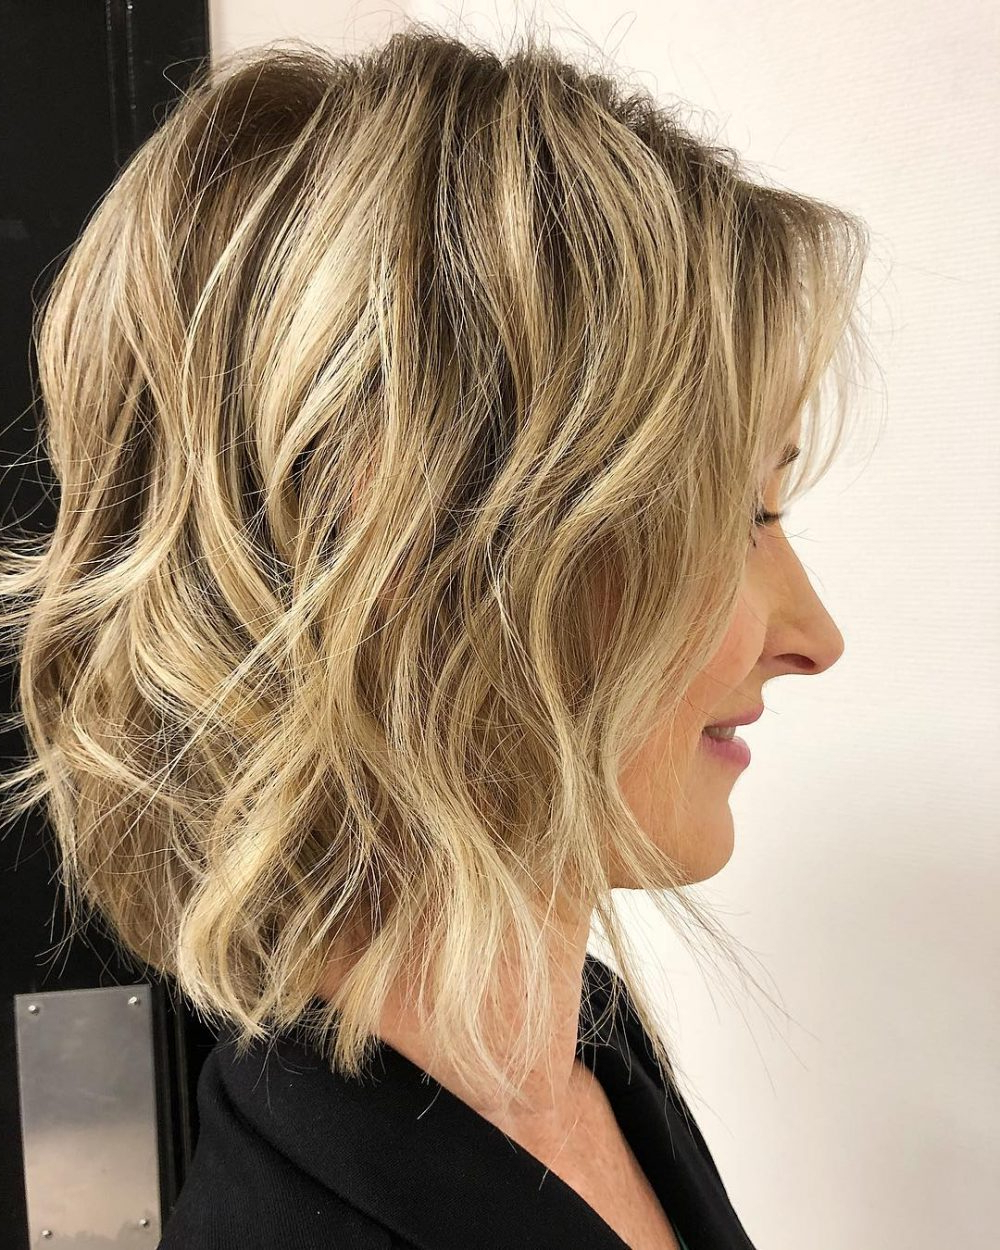 43 Perfect Short Hairstyles For Fine Hair In 2018 Throughout Wavy Sassy Bob Hairstyles (View 13 of 25)